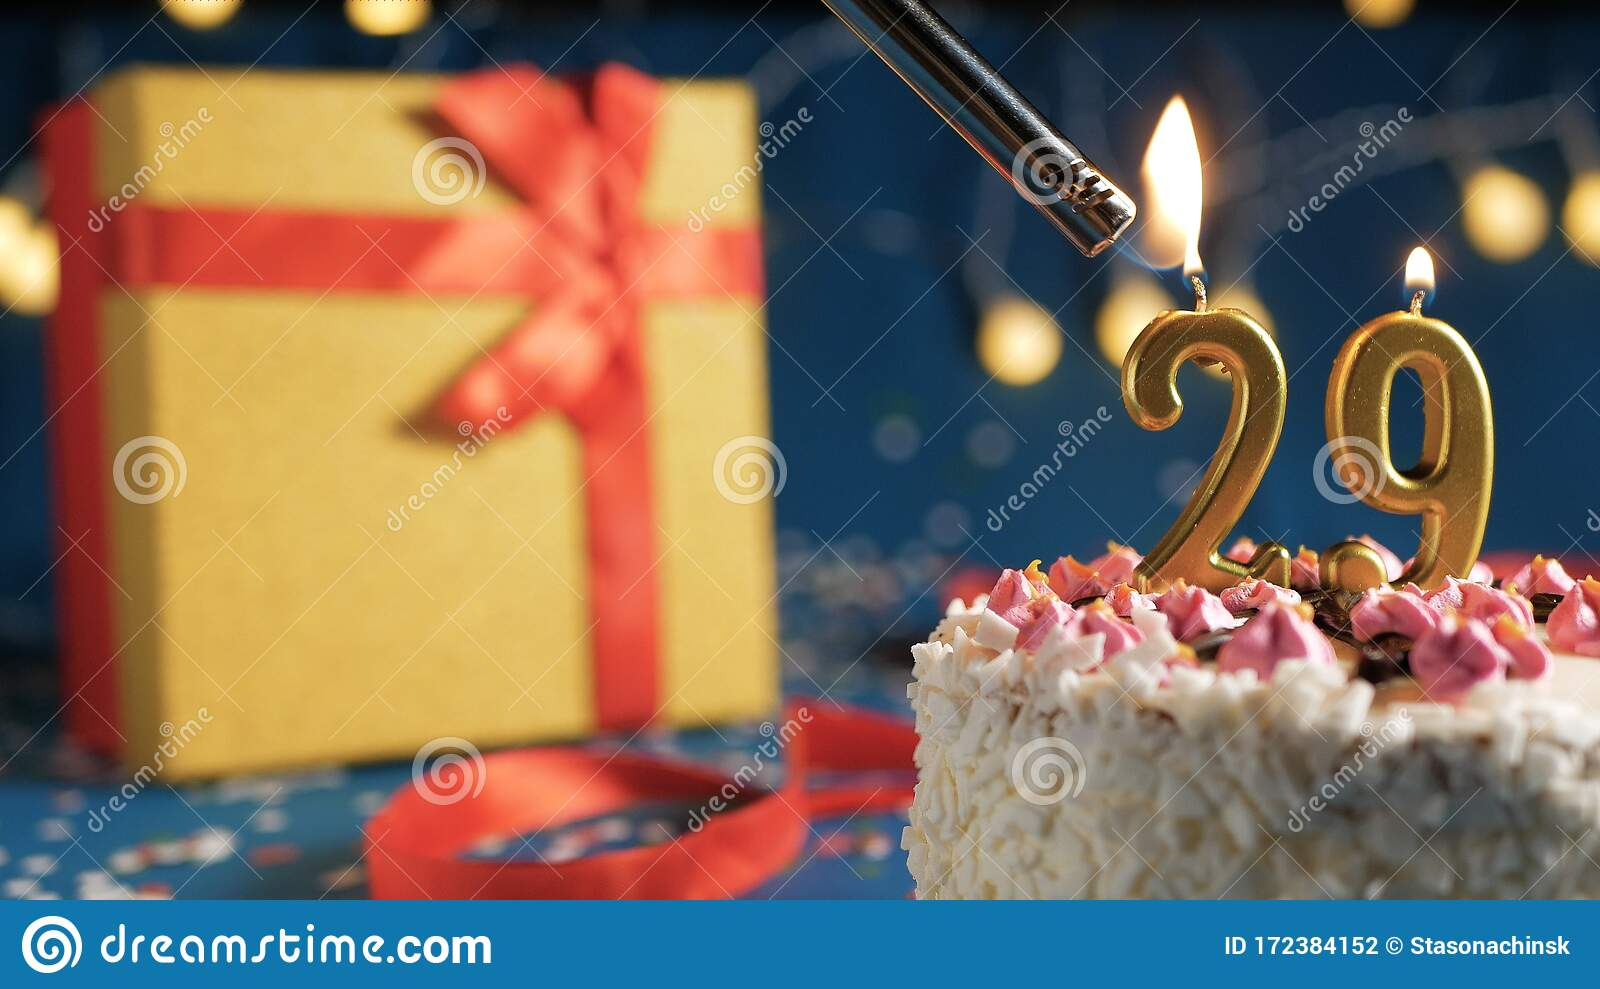 White Birthday Cake Number 29 Golden Candles Burning By Lighter  Blue Background With Lights And